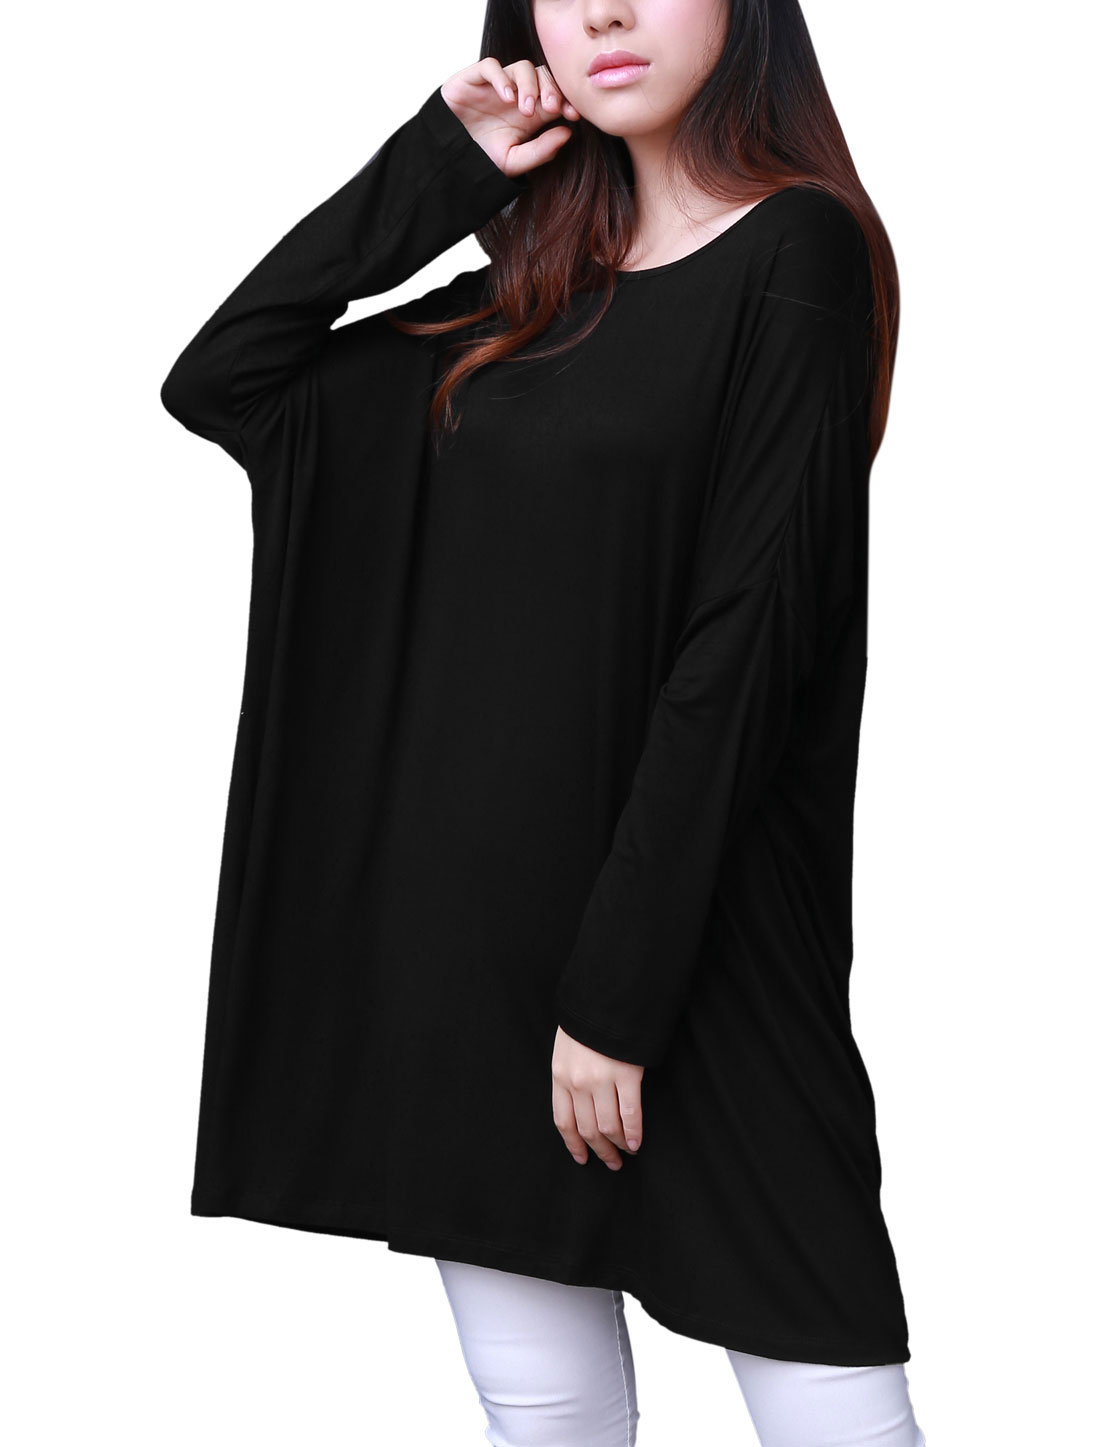 Women Chic Solid Color Round Neck 3/4 Dolman Sleeve Black Tops XL